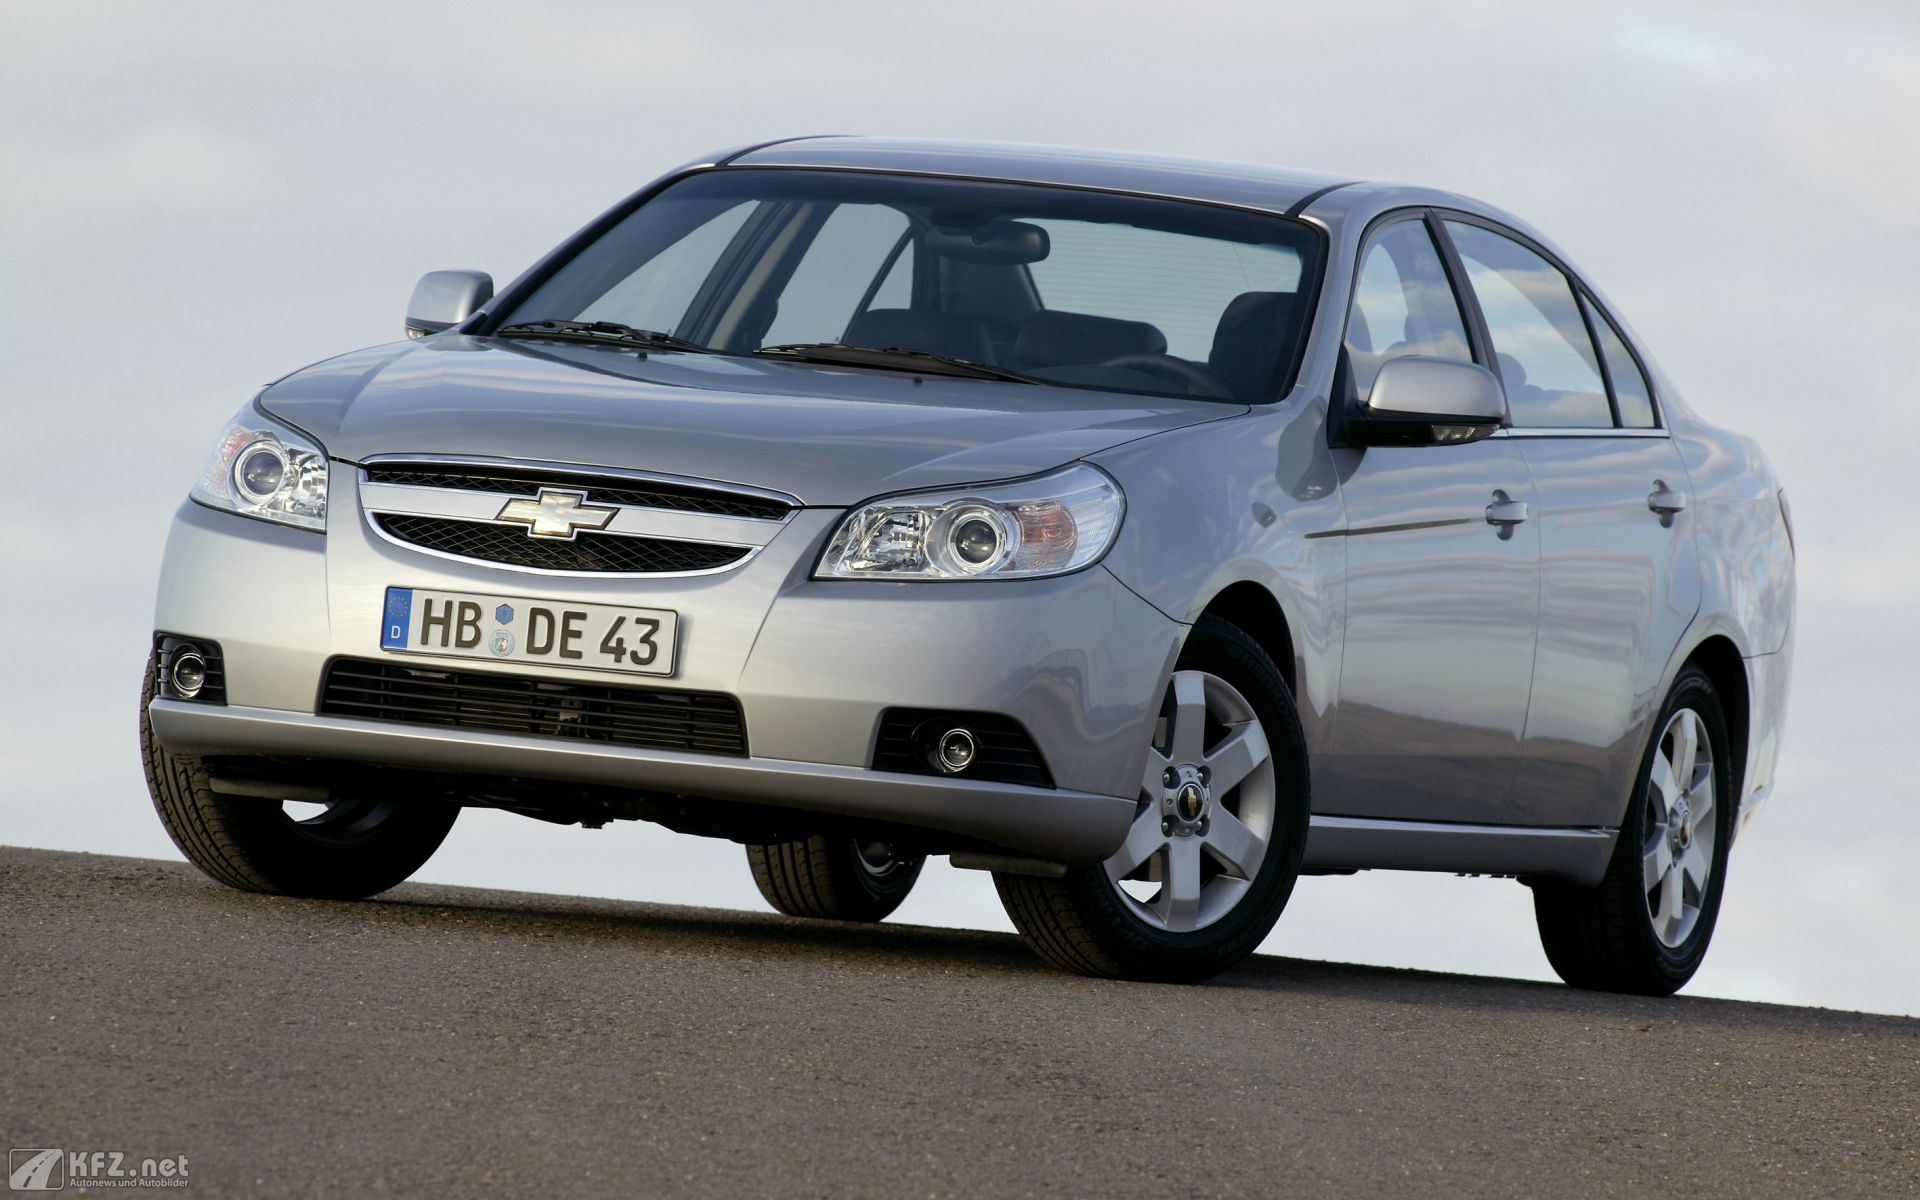 Chevrolet Epica 2.0 VCDi LS 4dr diesel saloon at Cheap Price